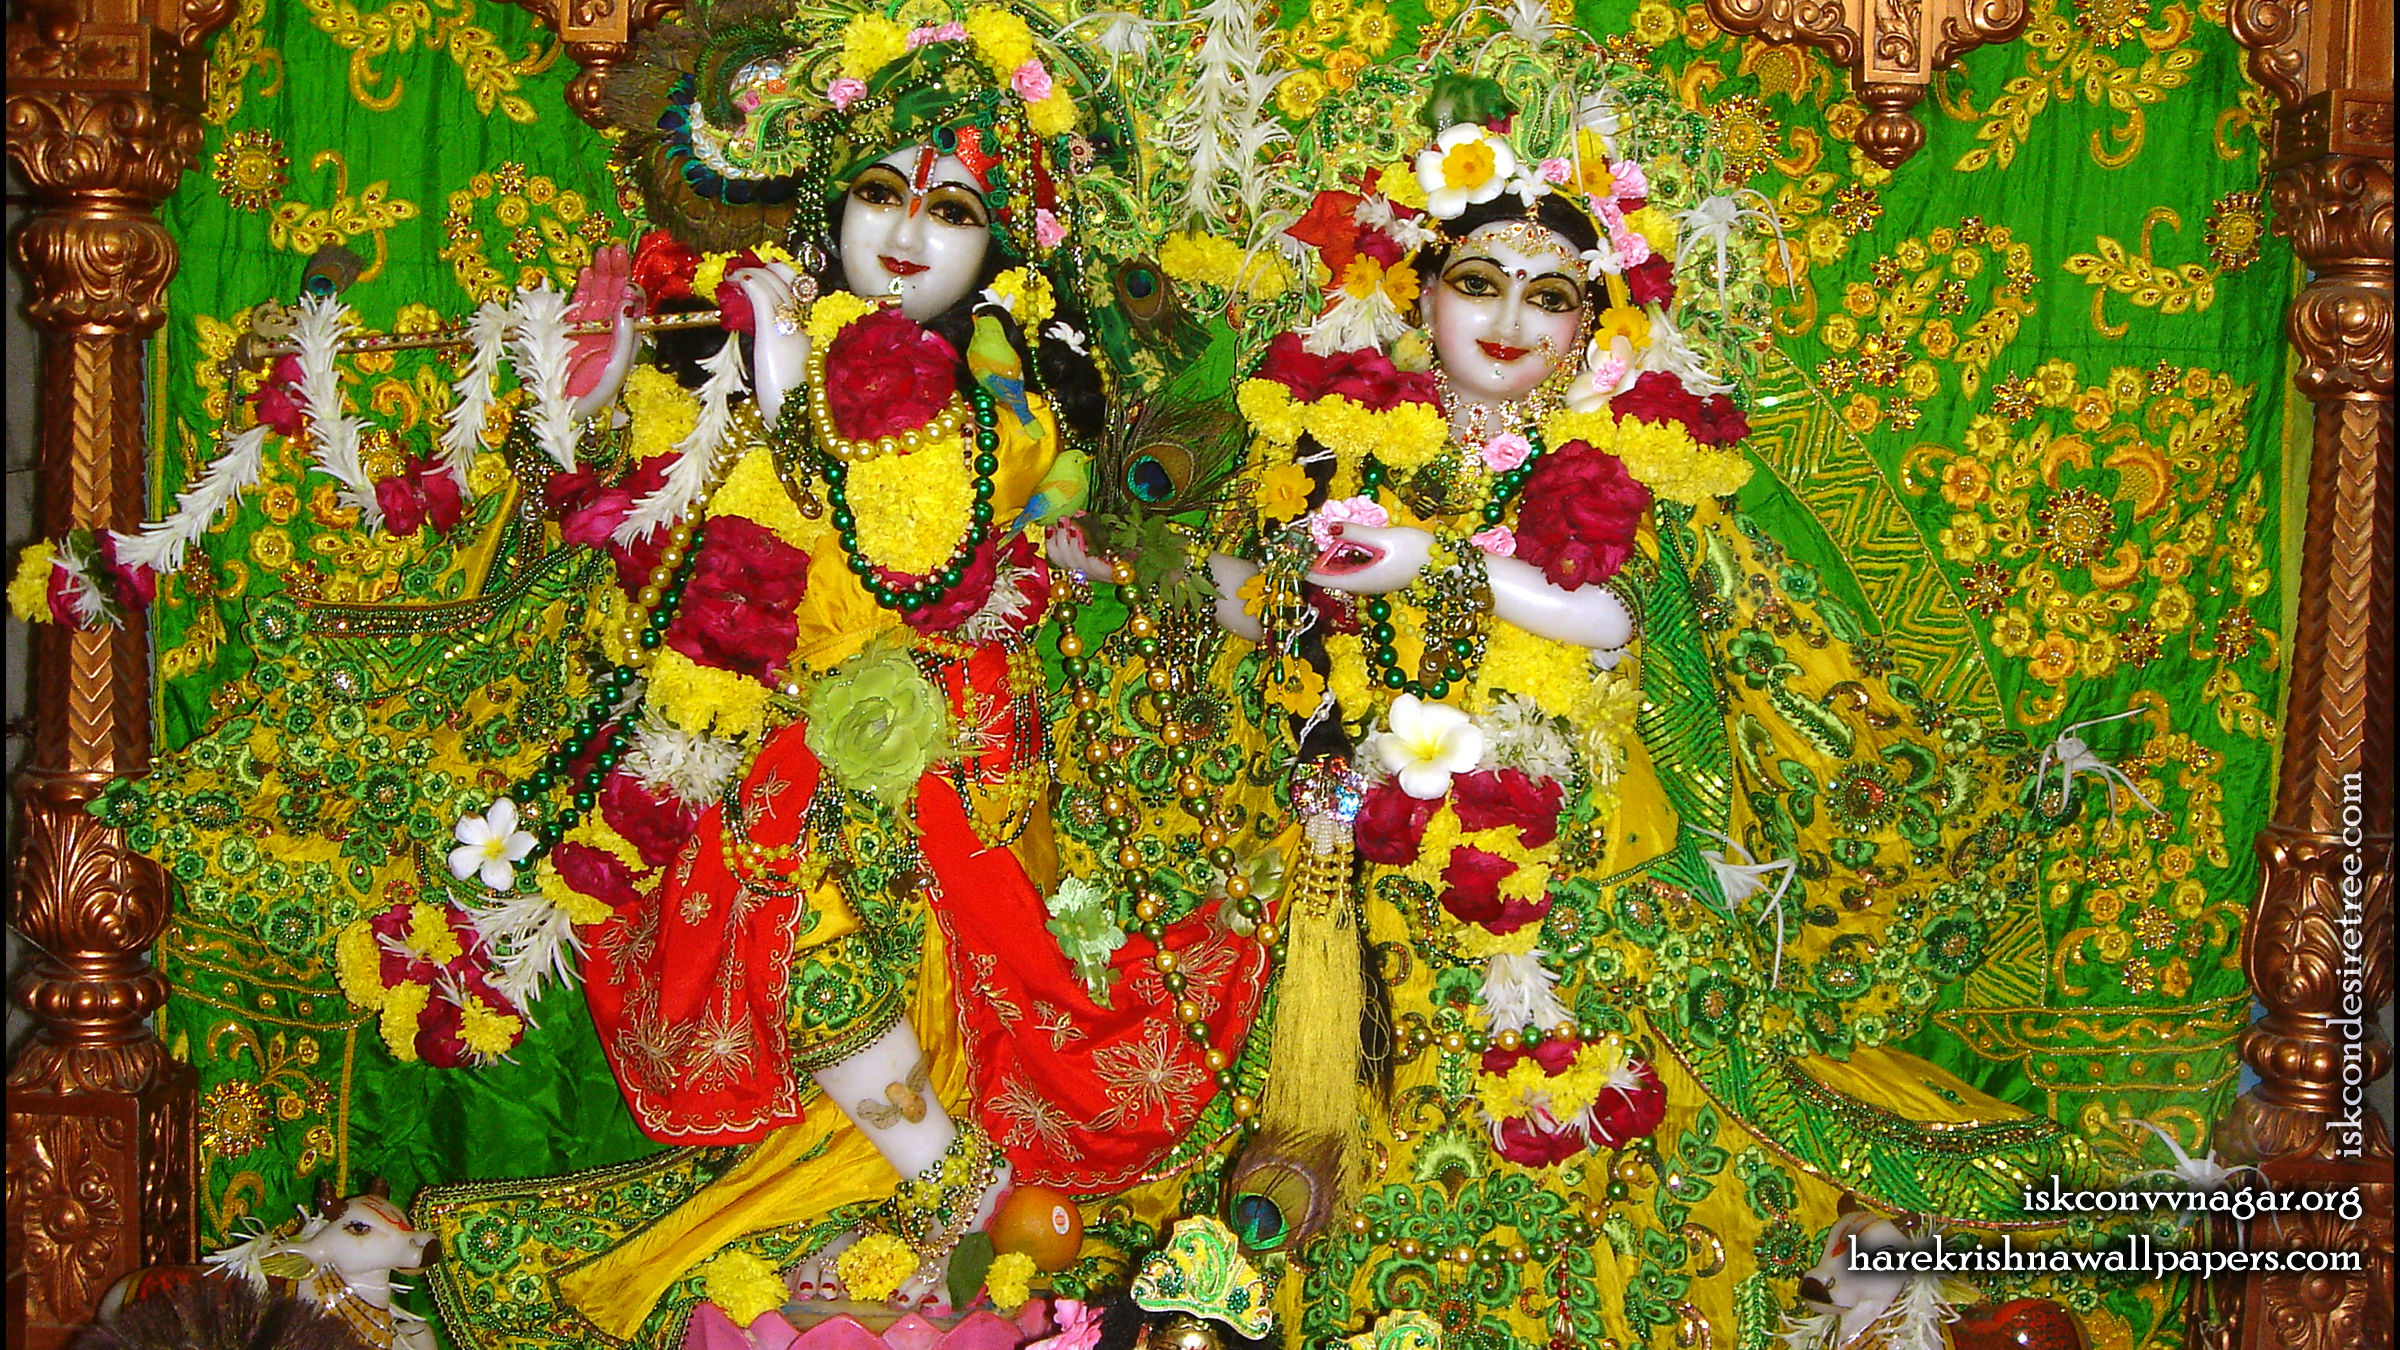 Sri Sri Radha Giridhari Wallpaper (011) Size 2400x1350 Download